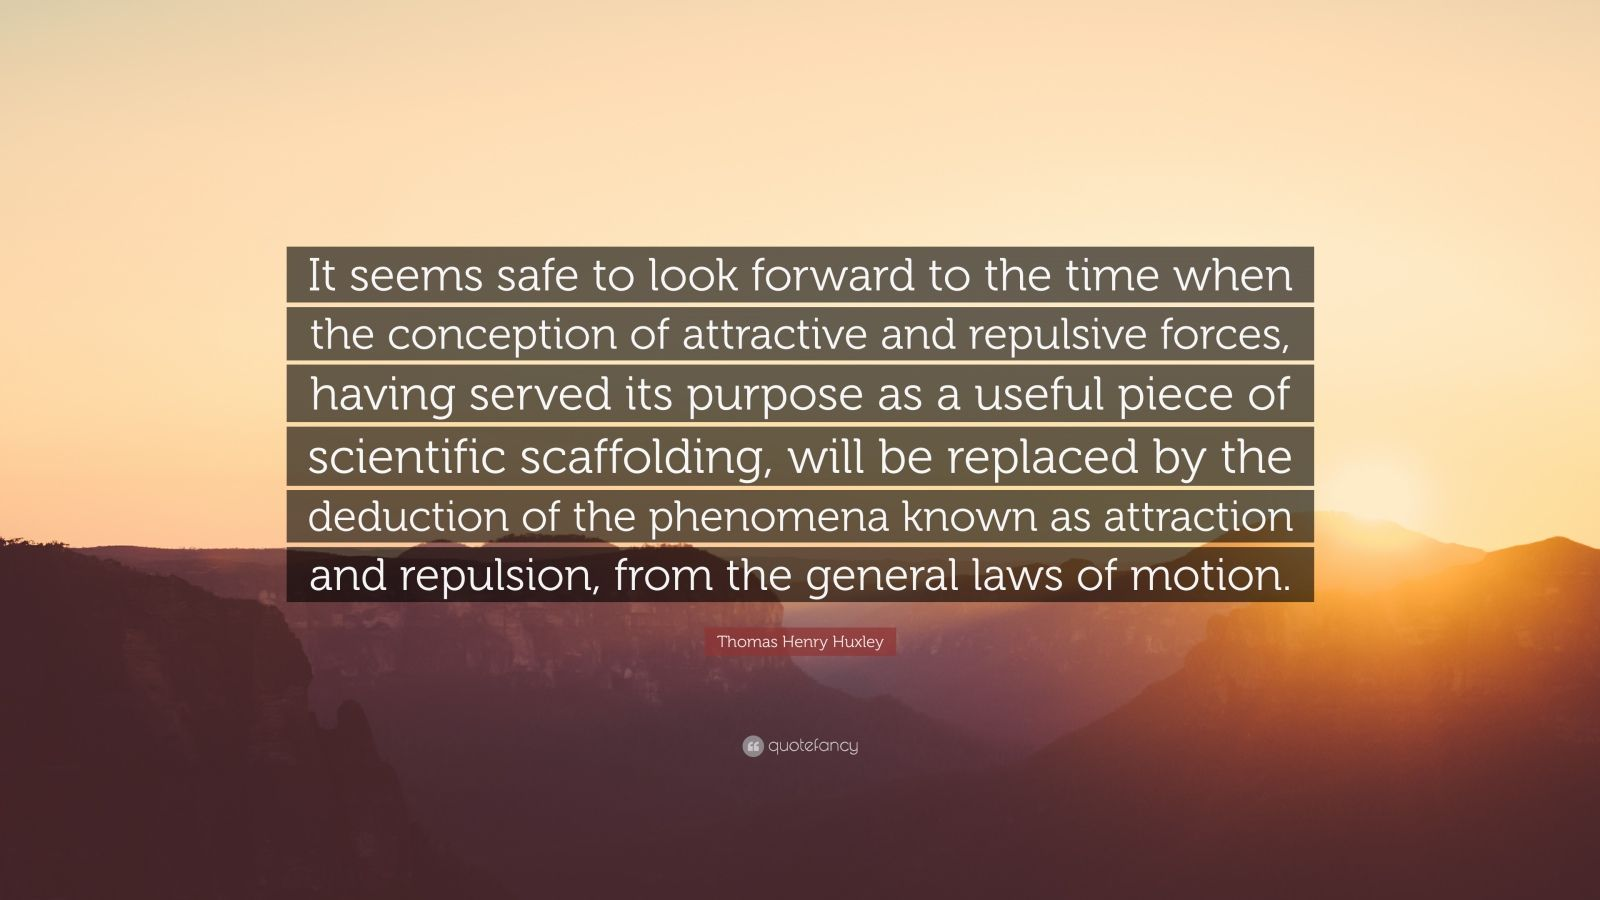 """Thomas Henry Huxley Quote: """"It seems safe to look forward to the time when the conception of attractive and repulsive forces, having served its purpose as a useful piece of scientific scaffolding, will be replaced by the deduction of the phenomena known as attraction and repulsion, from the general laws of motion."""""""